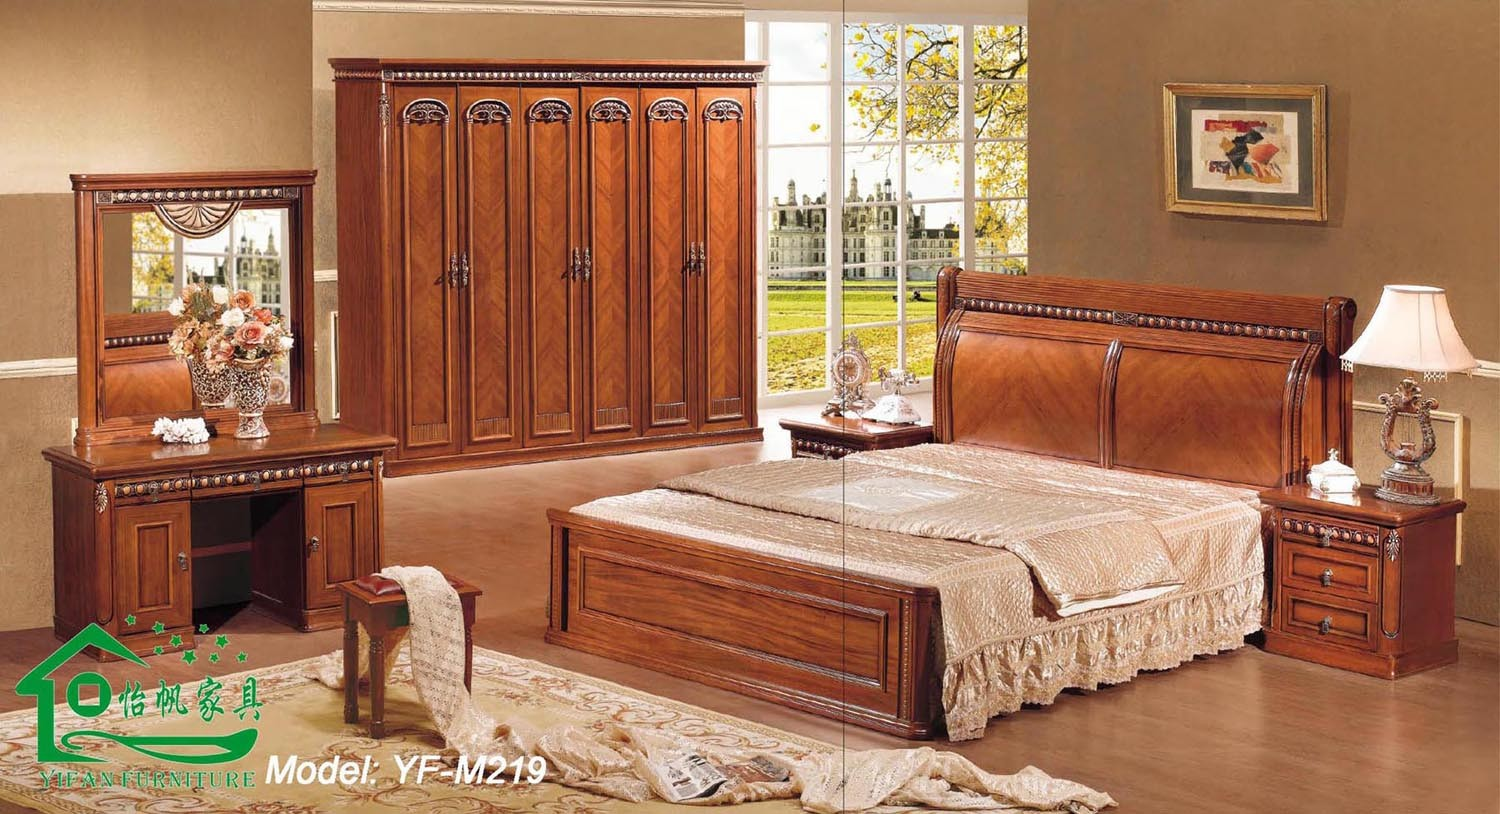 wooden bedroom furniture with 80 inch length wood bed yf m219 wooden bedroom furniture with. Black Bedroom Furniture Sets. Home Design Ideas